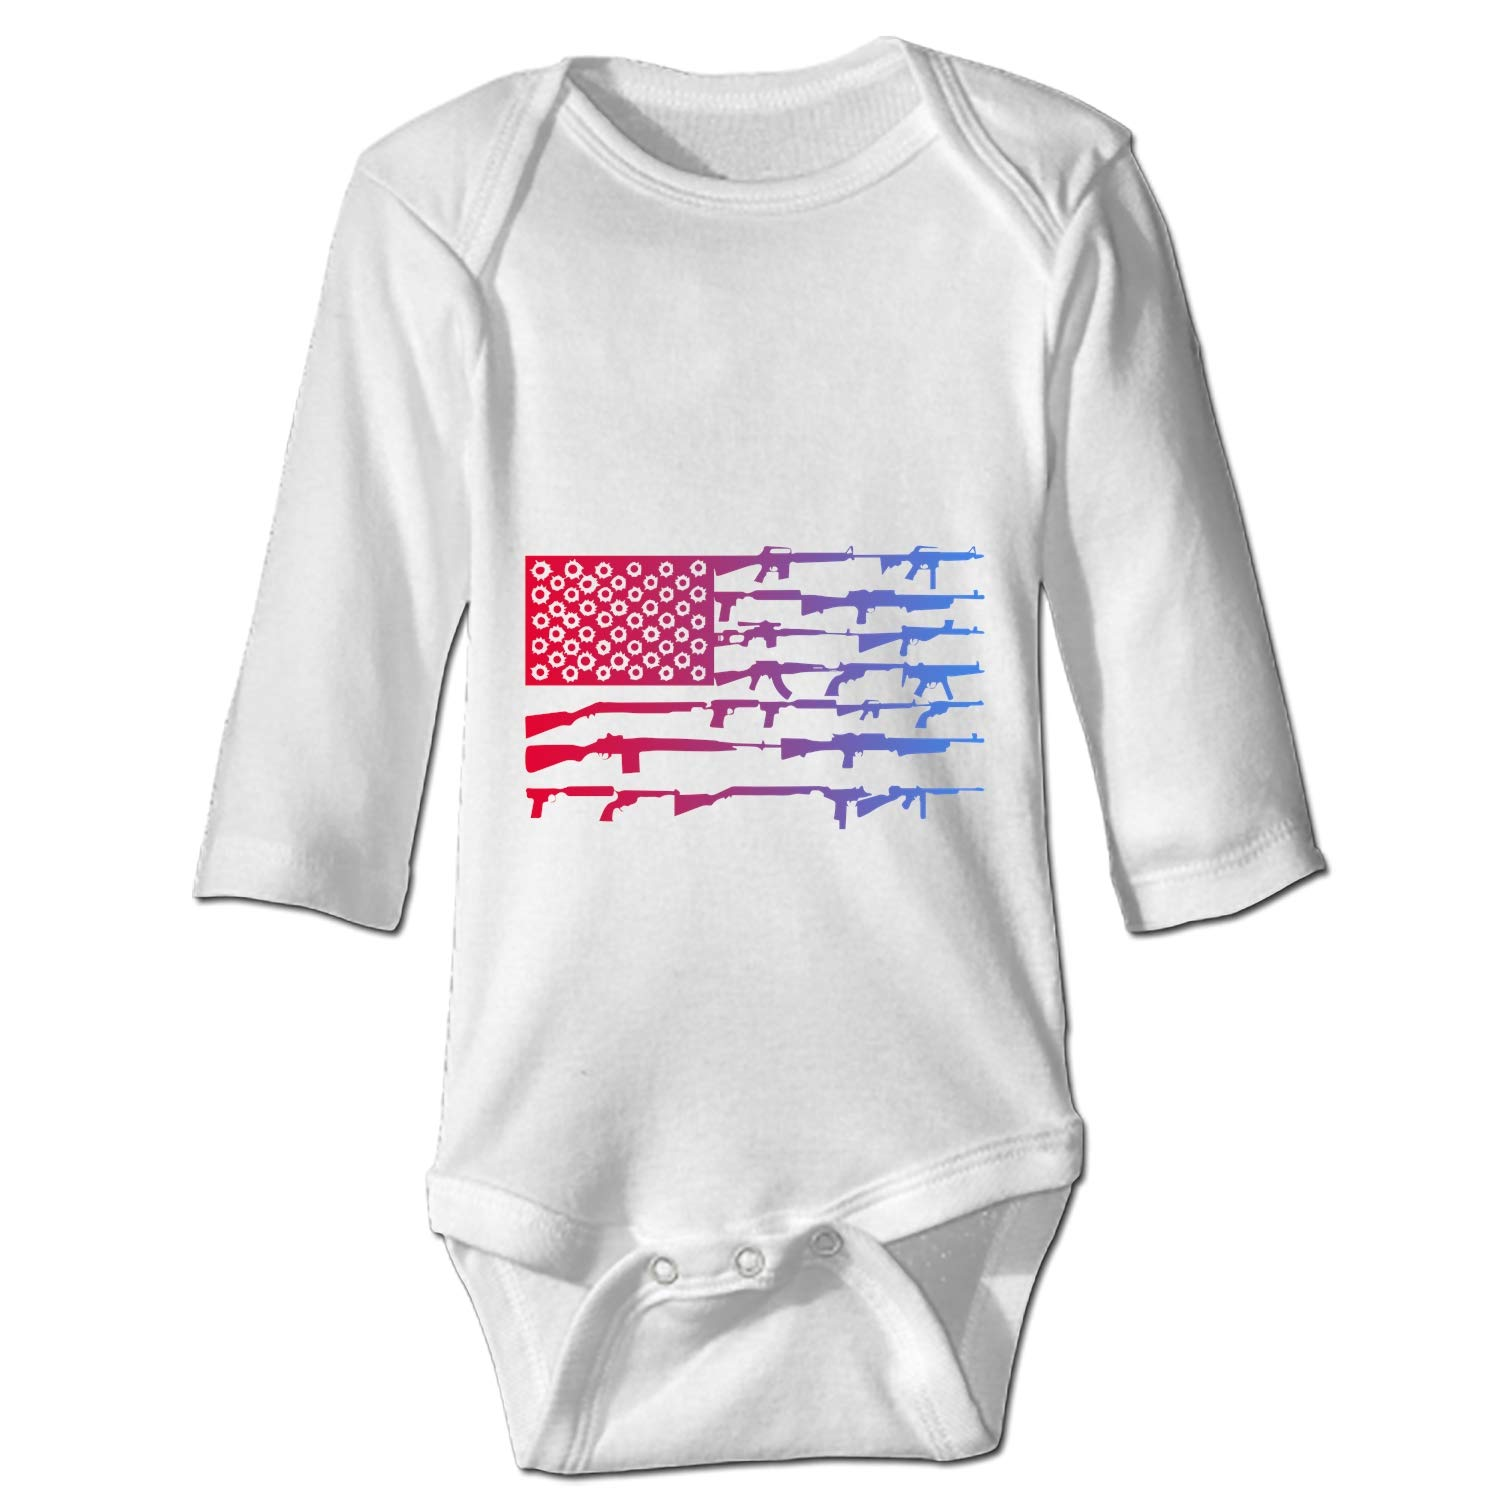 BABBY Armed with The American Flag Unisex Baby Bodysuit 6-24 Months